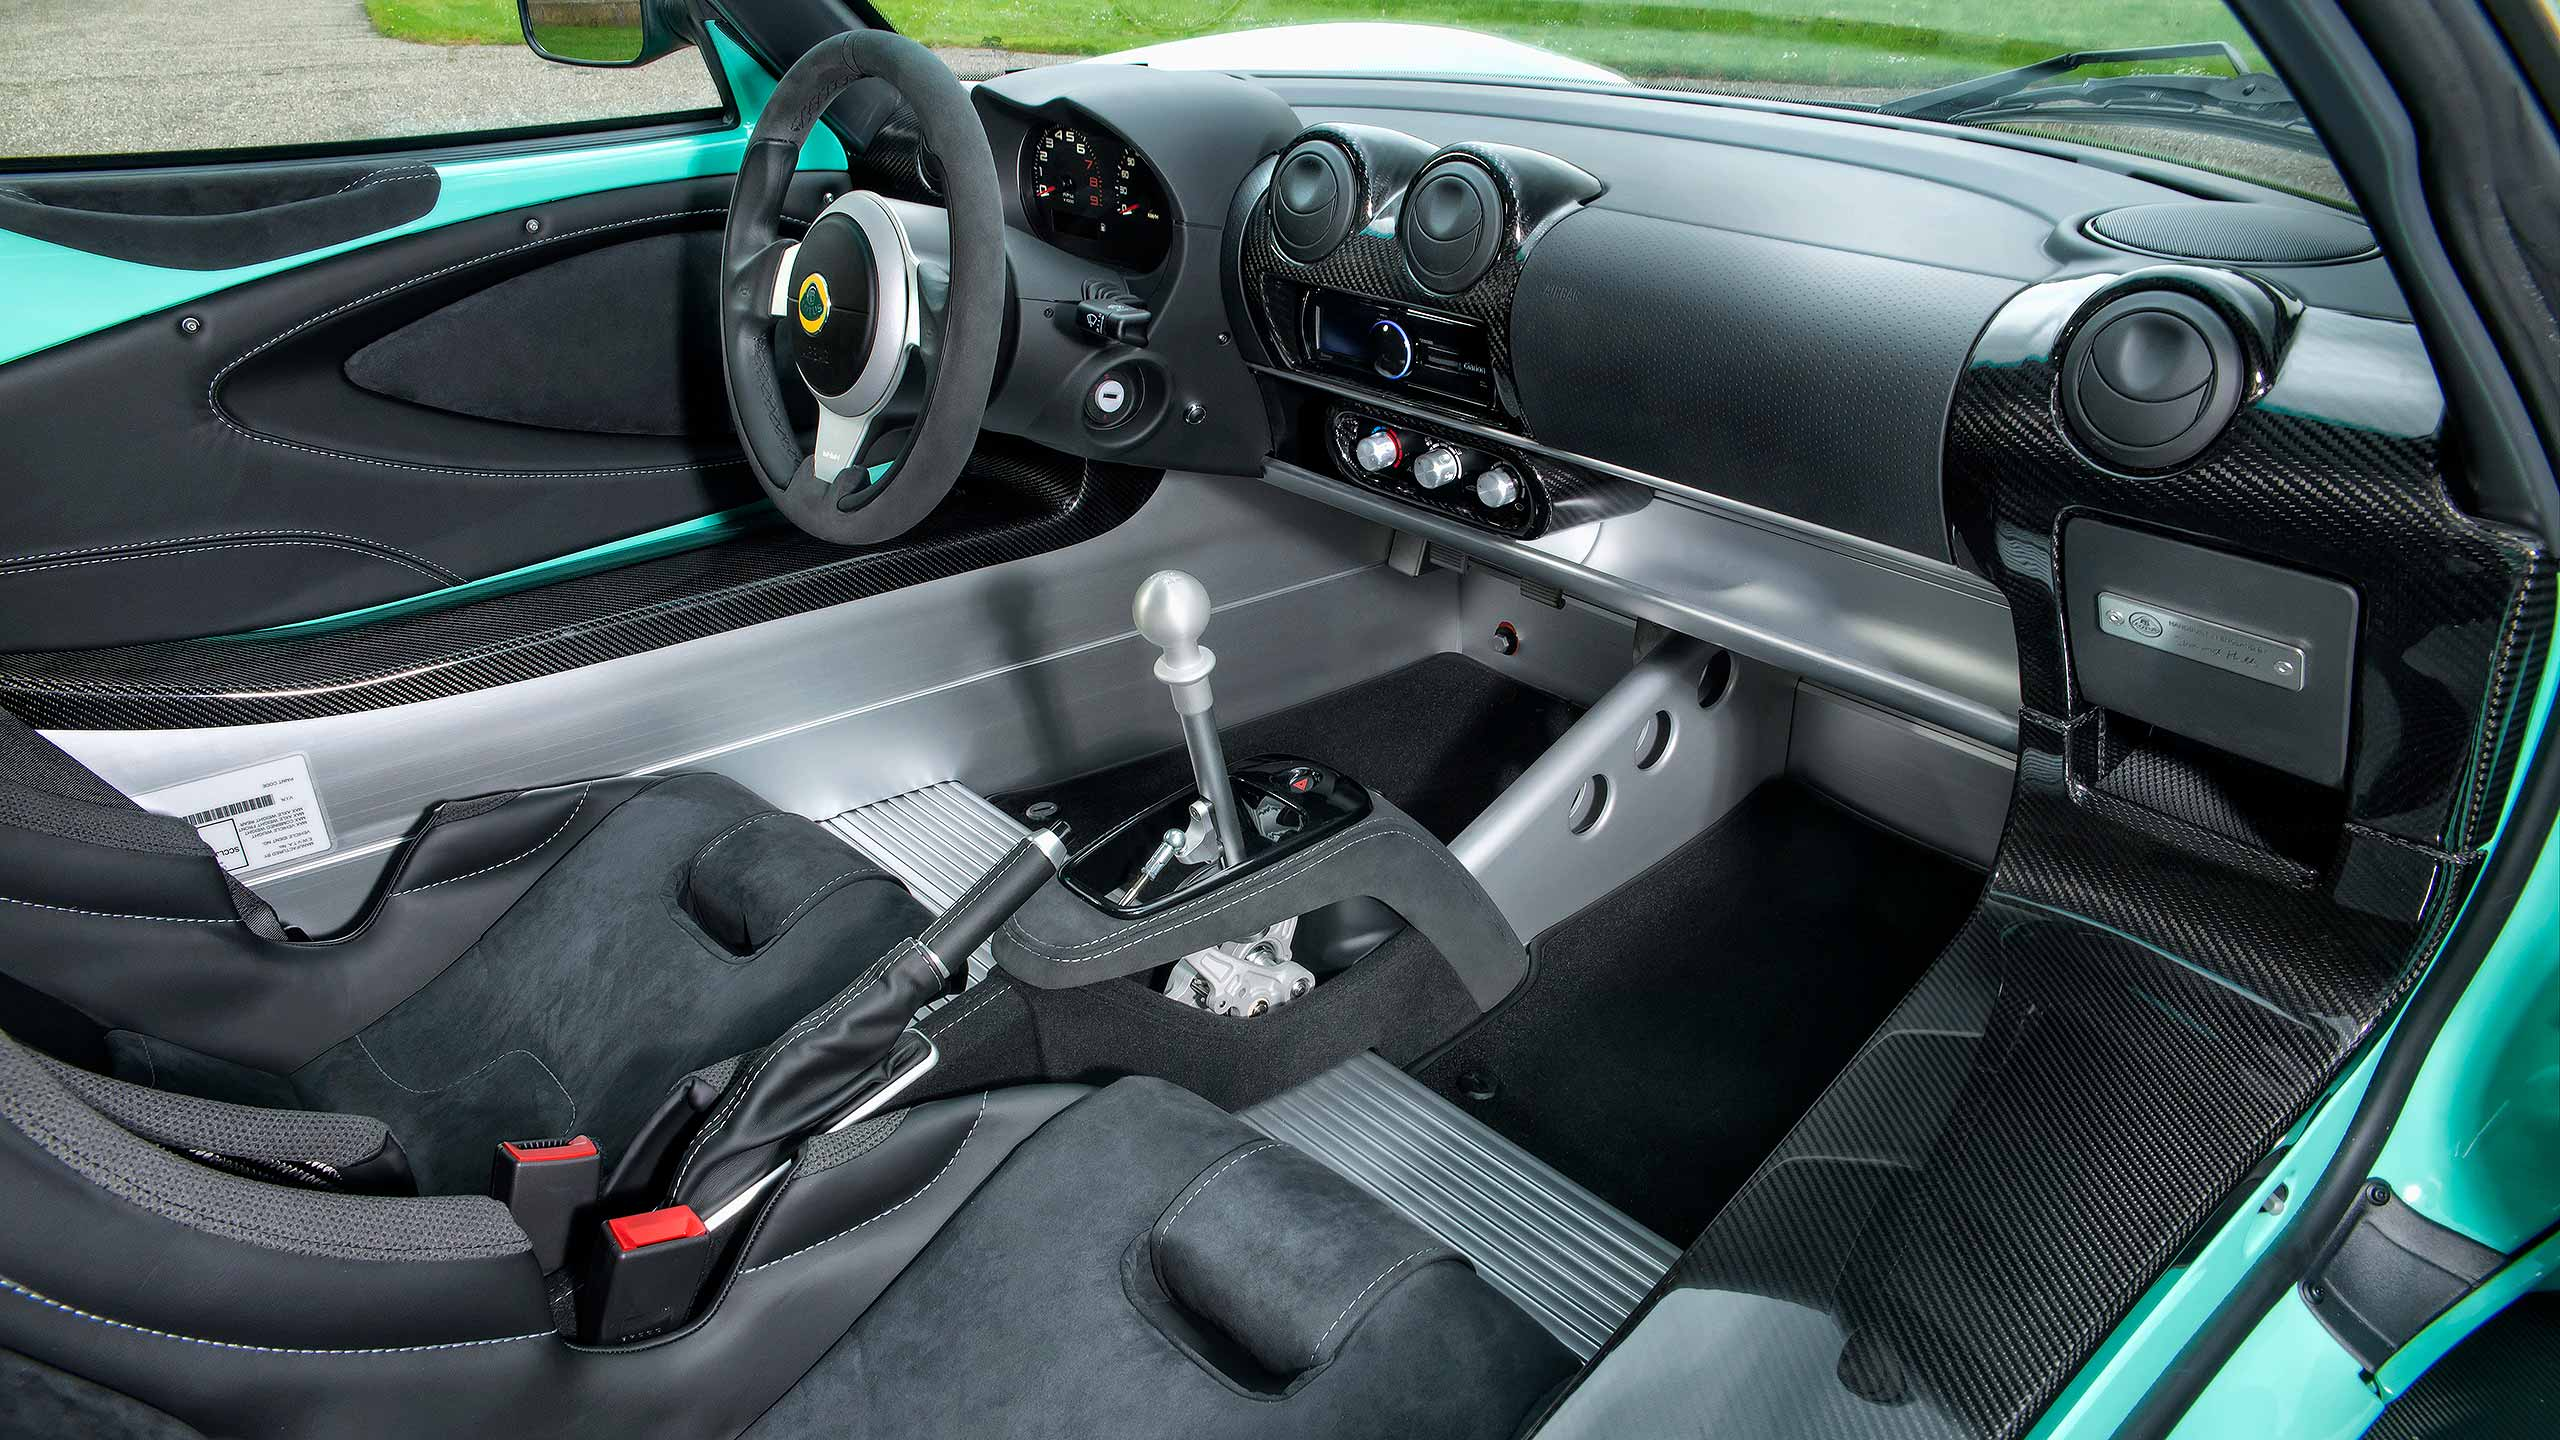 Every new lotus elise cup 250 customer can personalise their vehicle through the lotus exclusive programme developed by the lotus design team